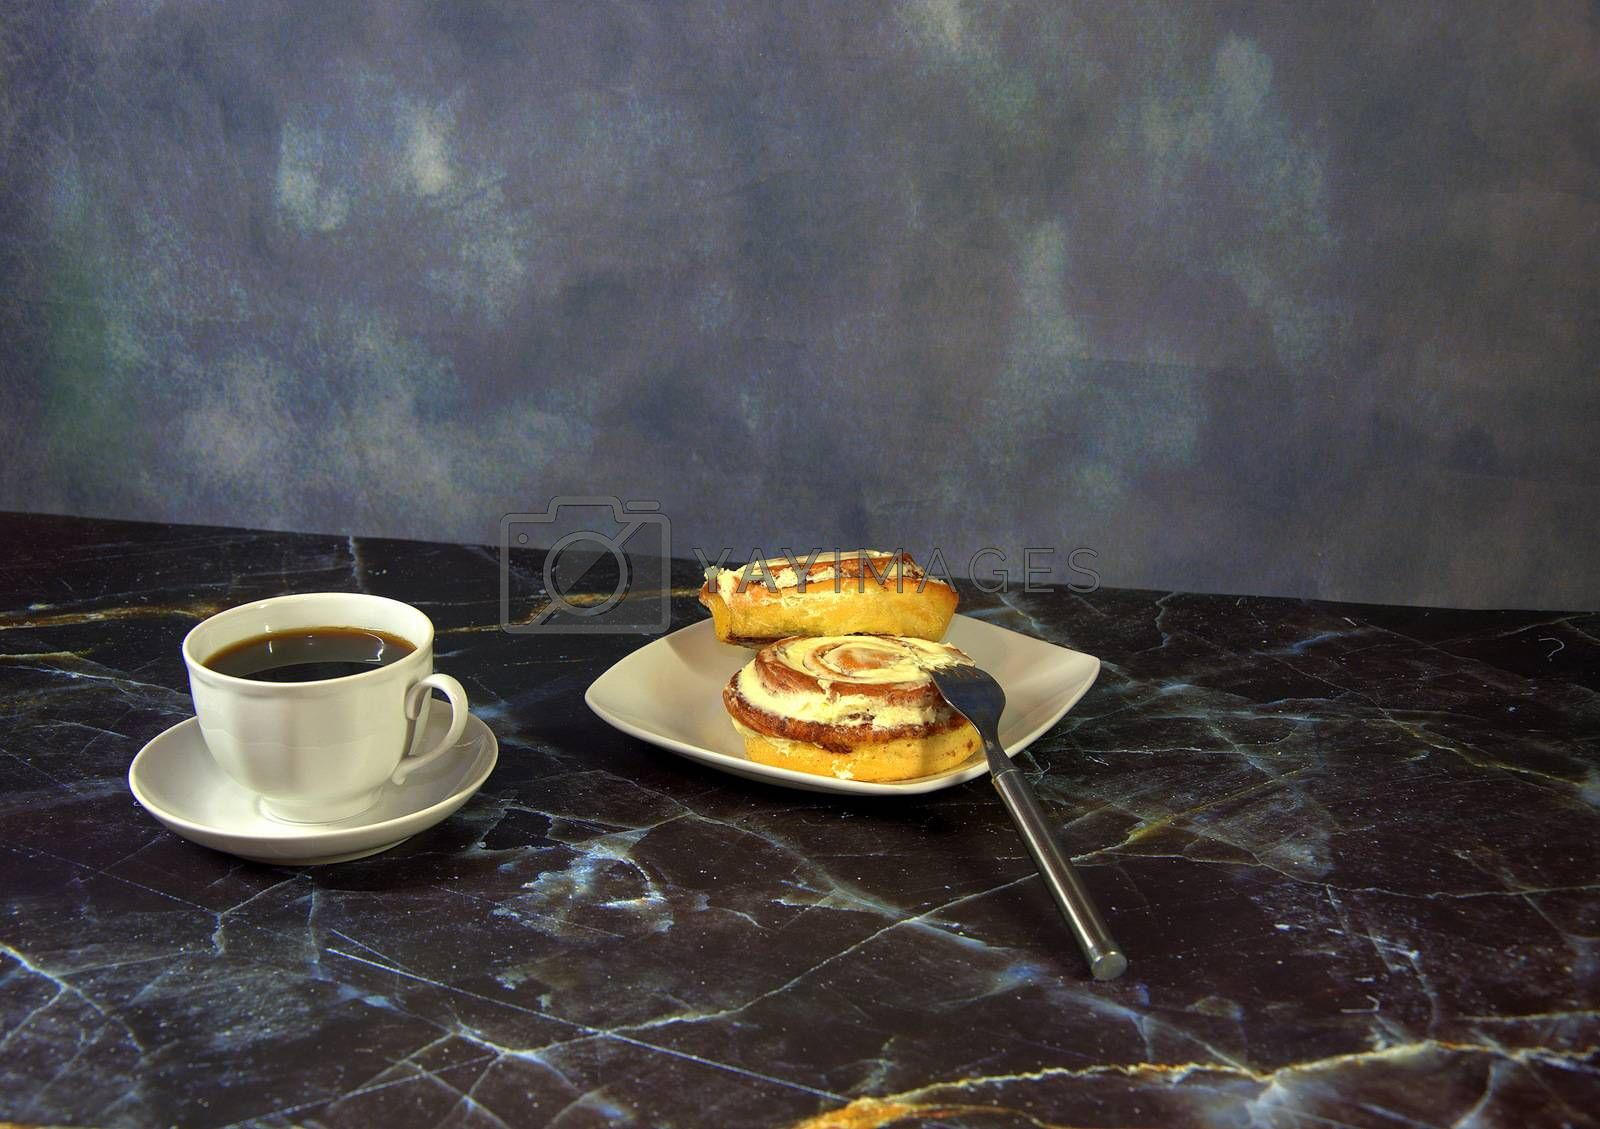 A cup of black coffee on a saucer and bwe cinnamon rolls on a plate, next to a fork. Close-up.